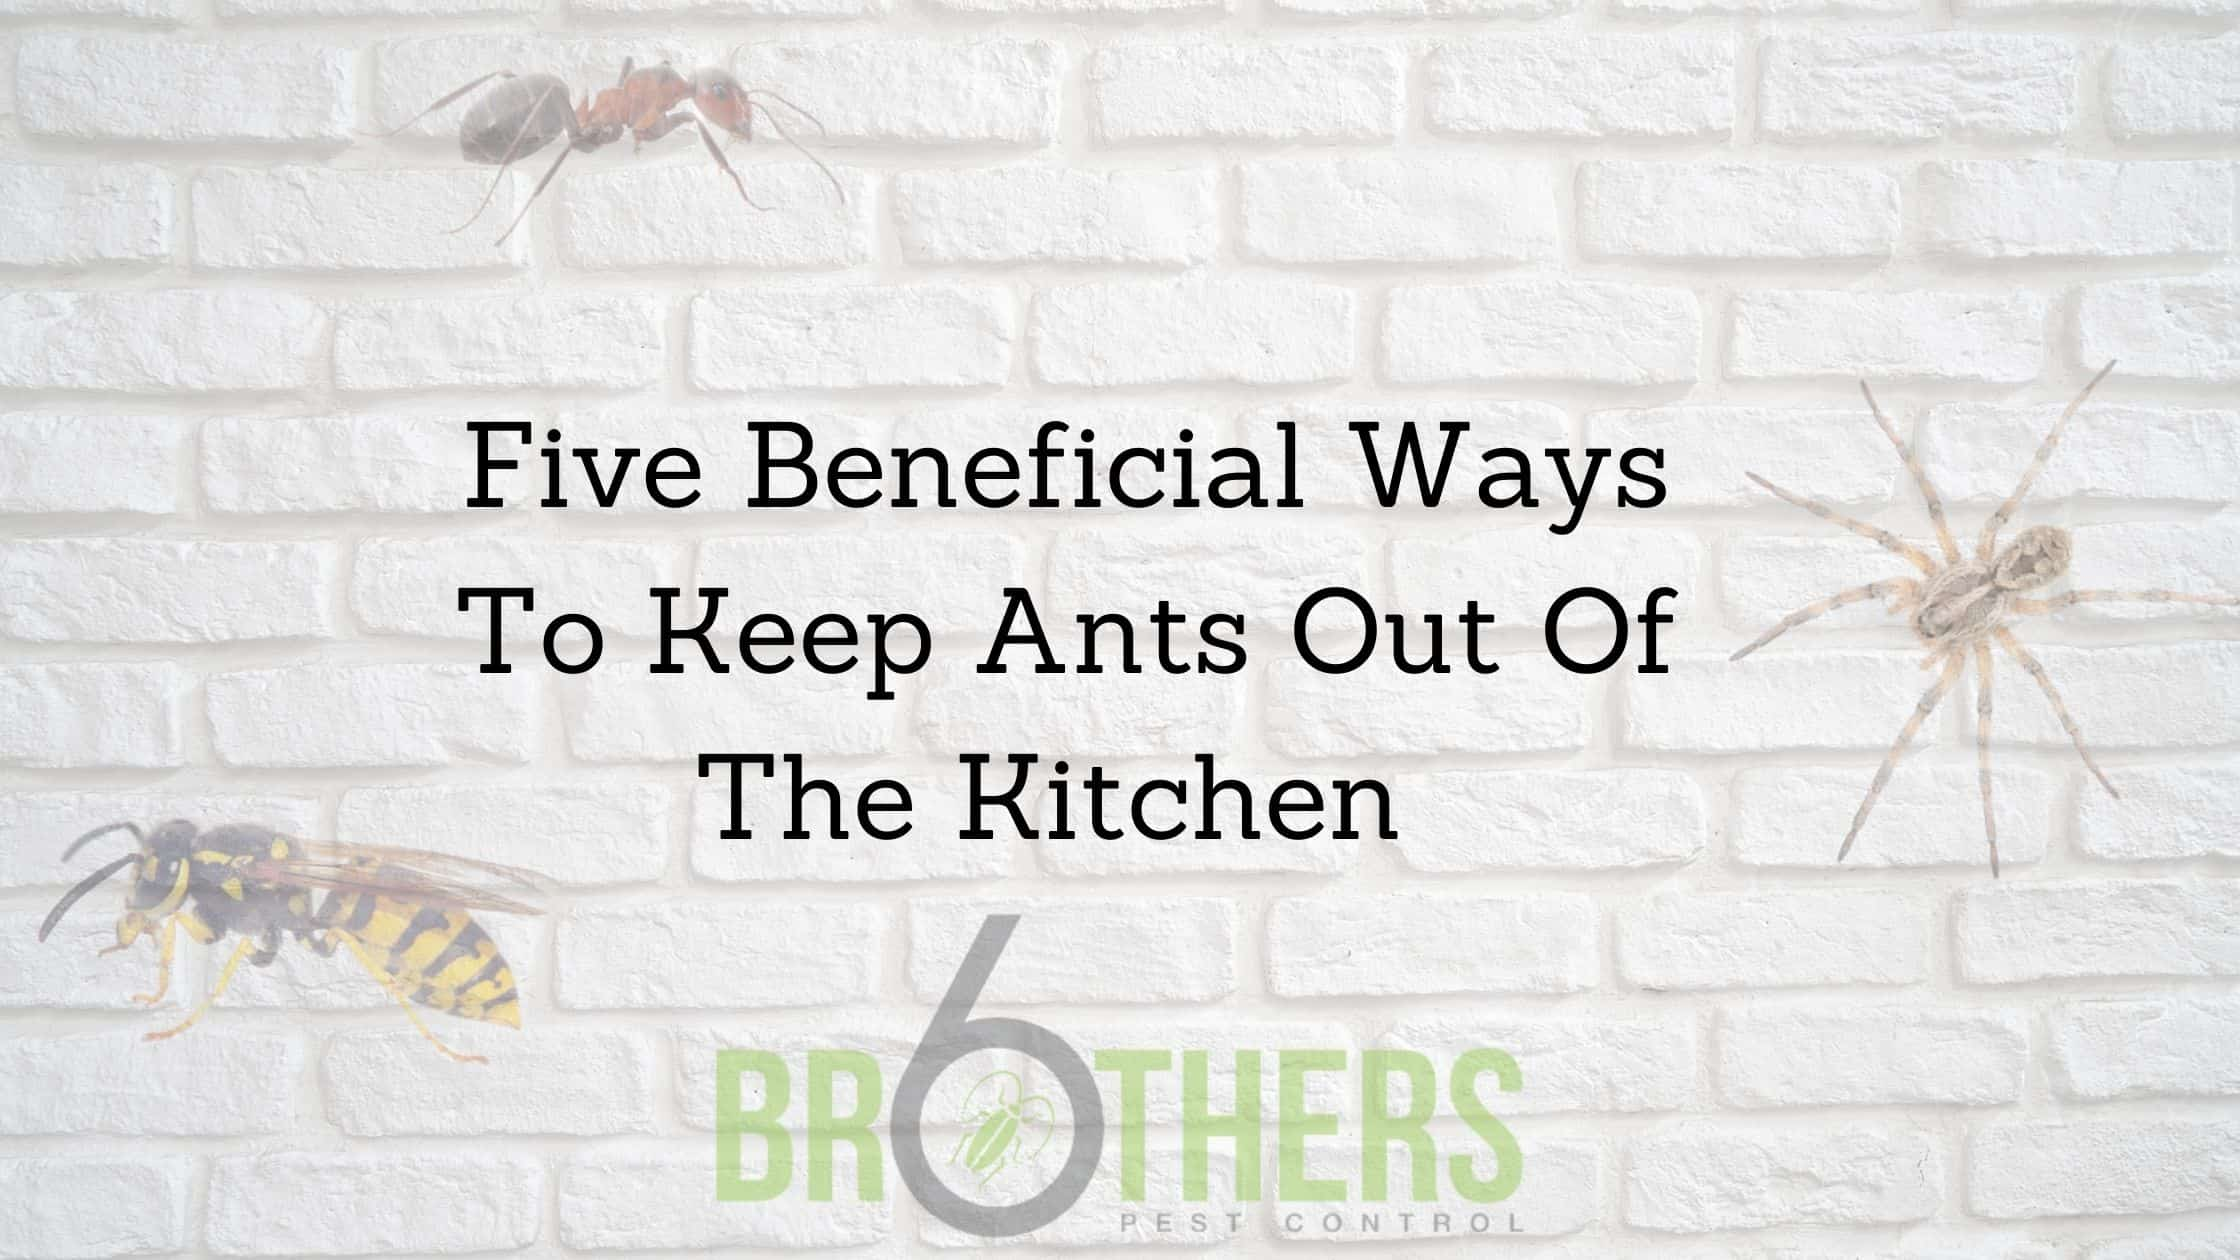 Five Beneficial Ways To Keep Ants Out Of The Kitchen